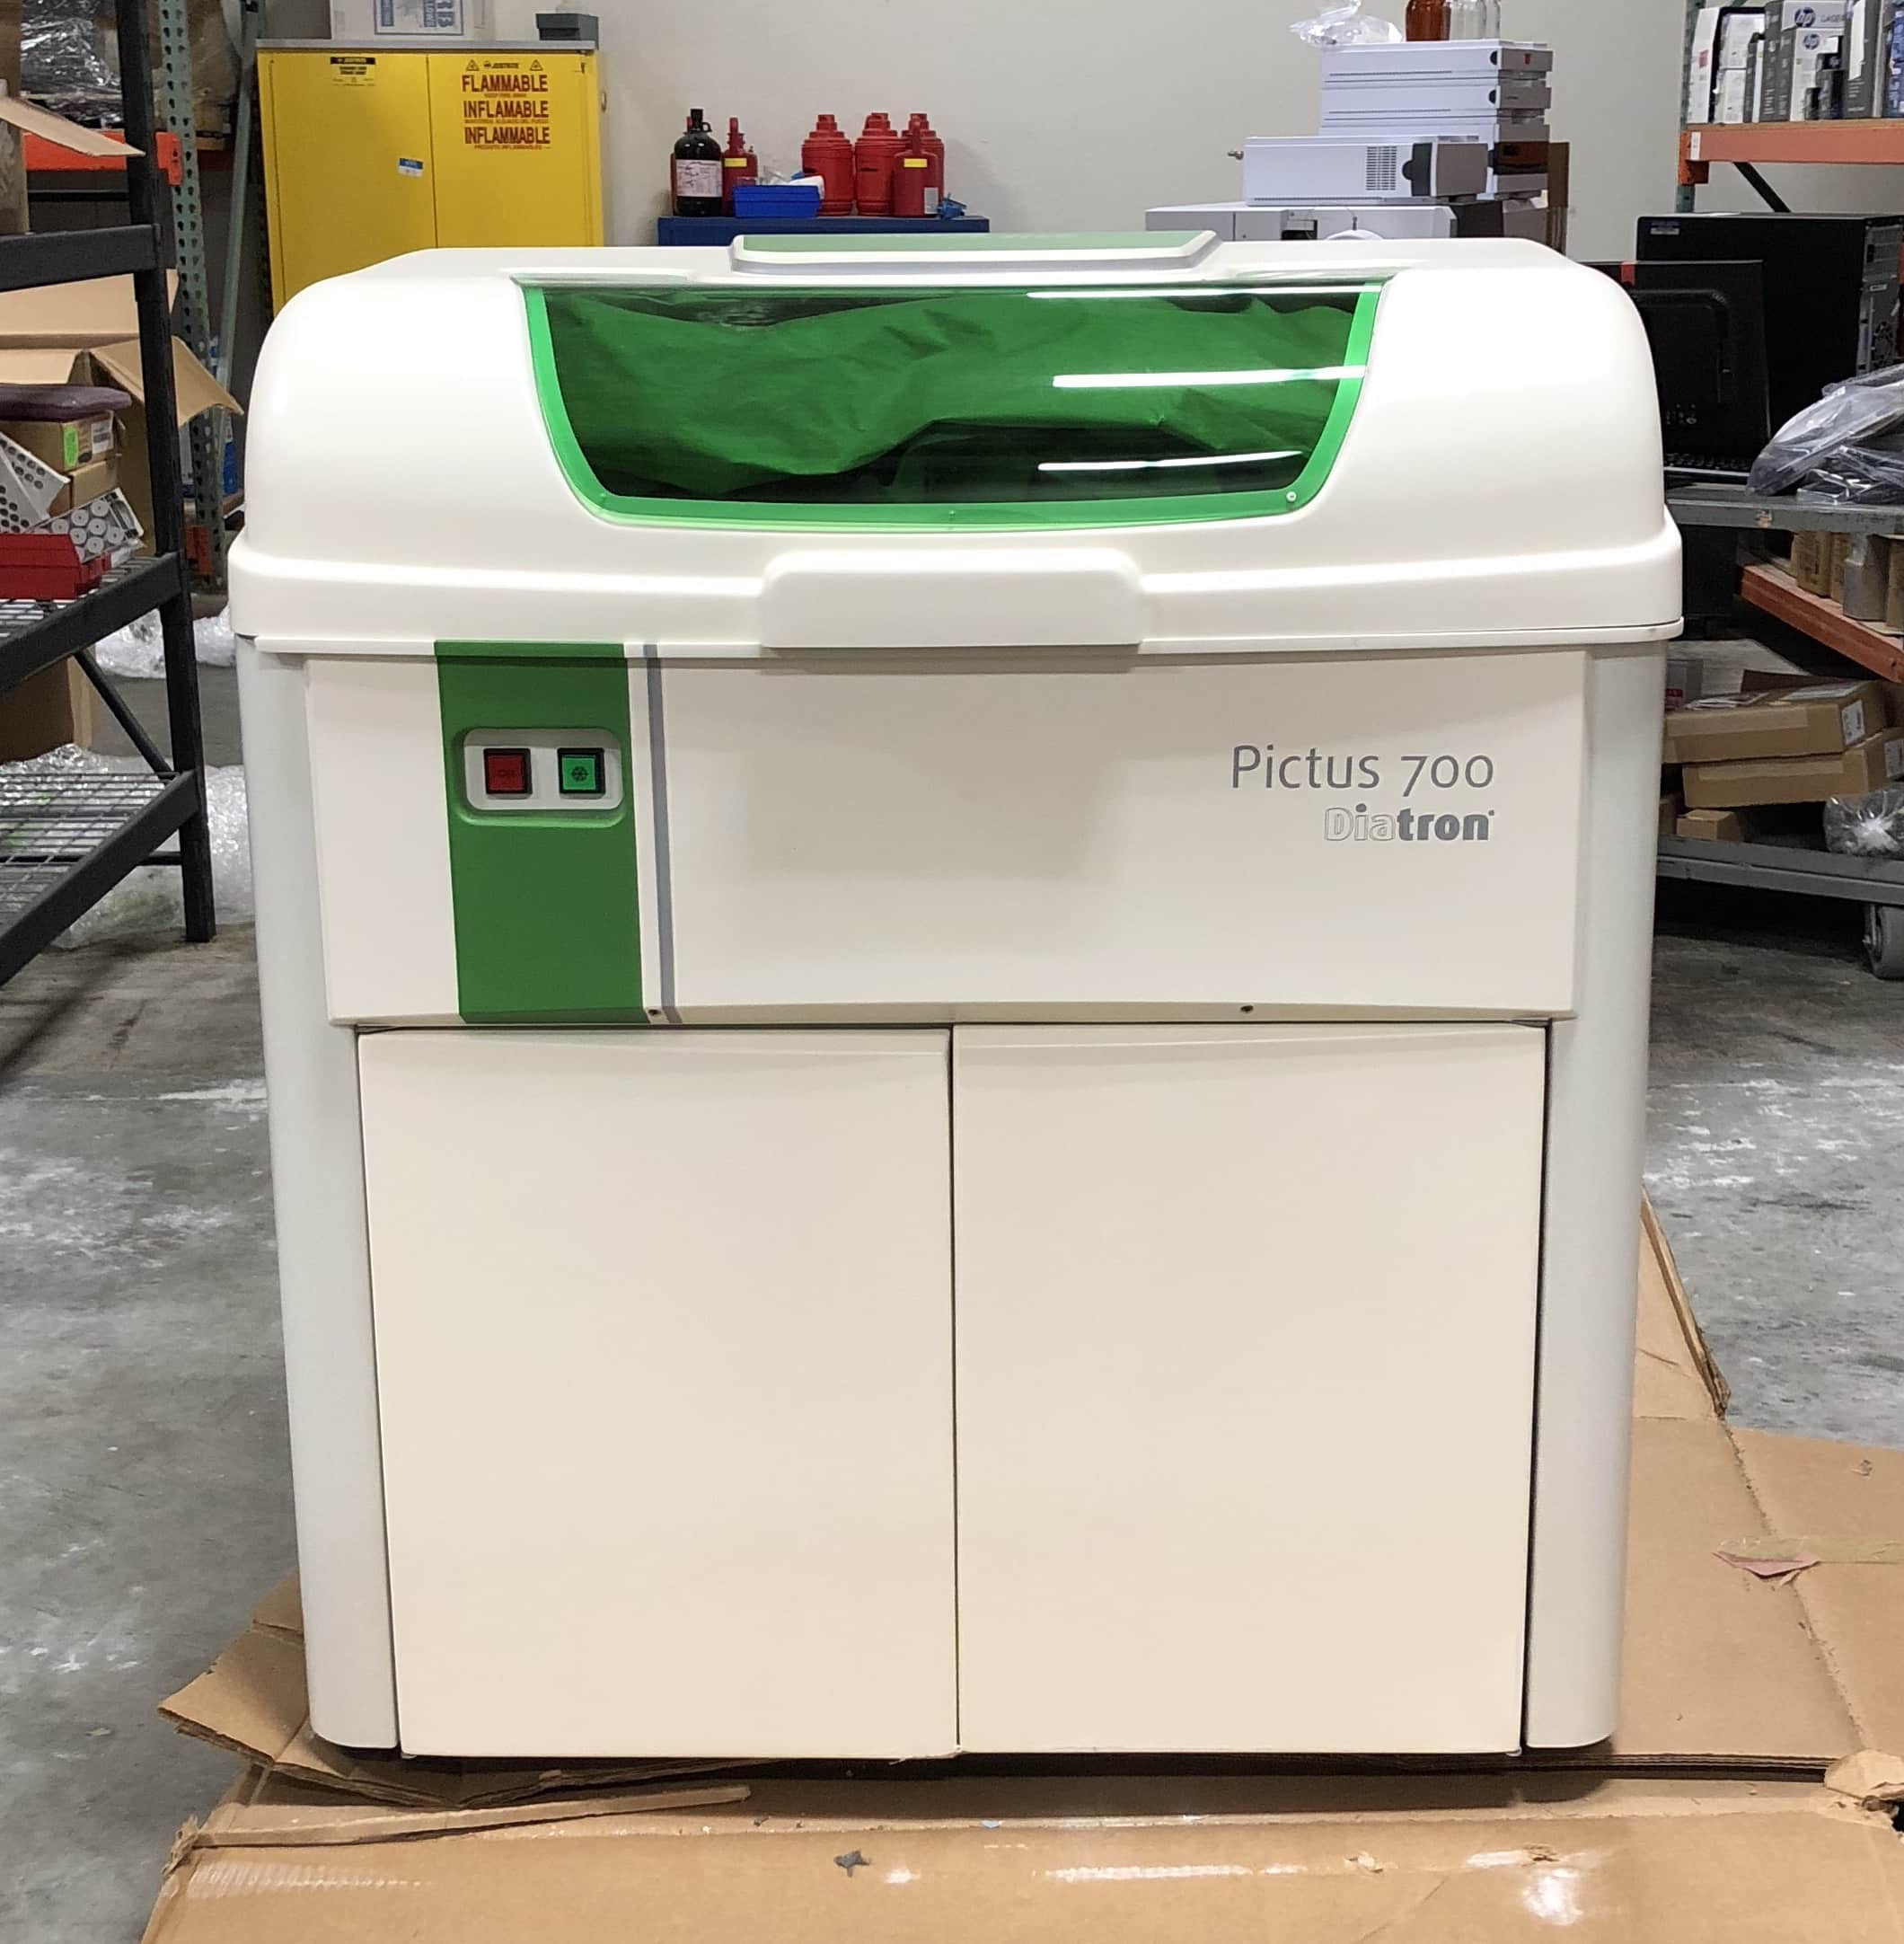 Diatron Pictus 700 Chemistry Analyzer. Sold as is. Installation not included.